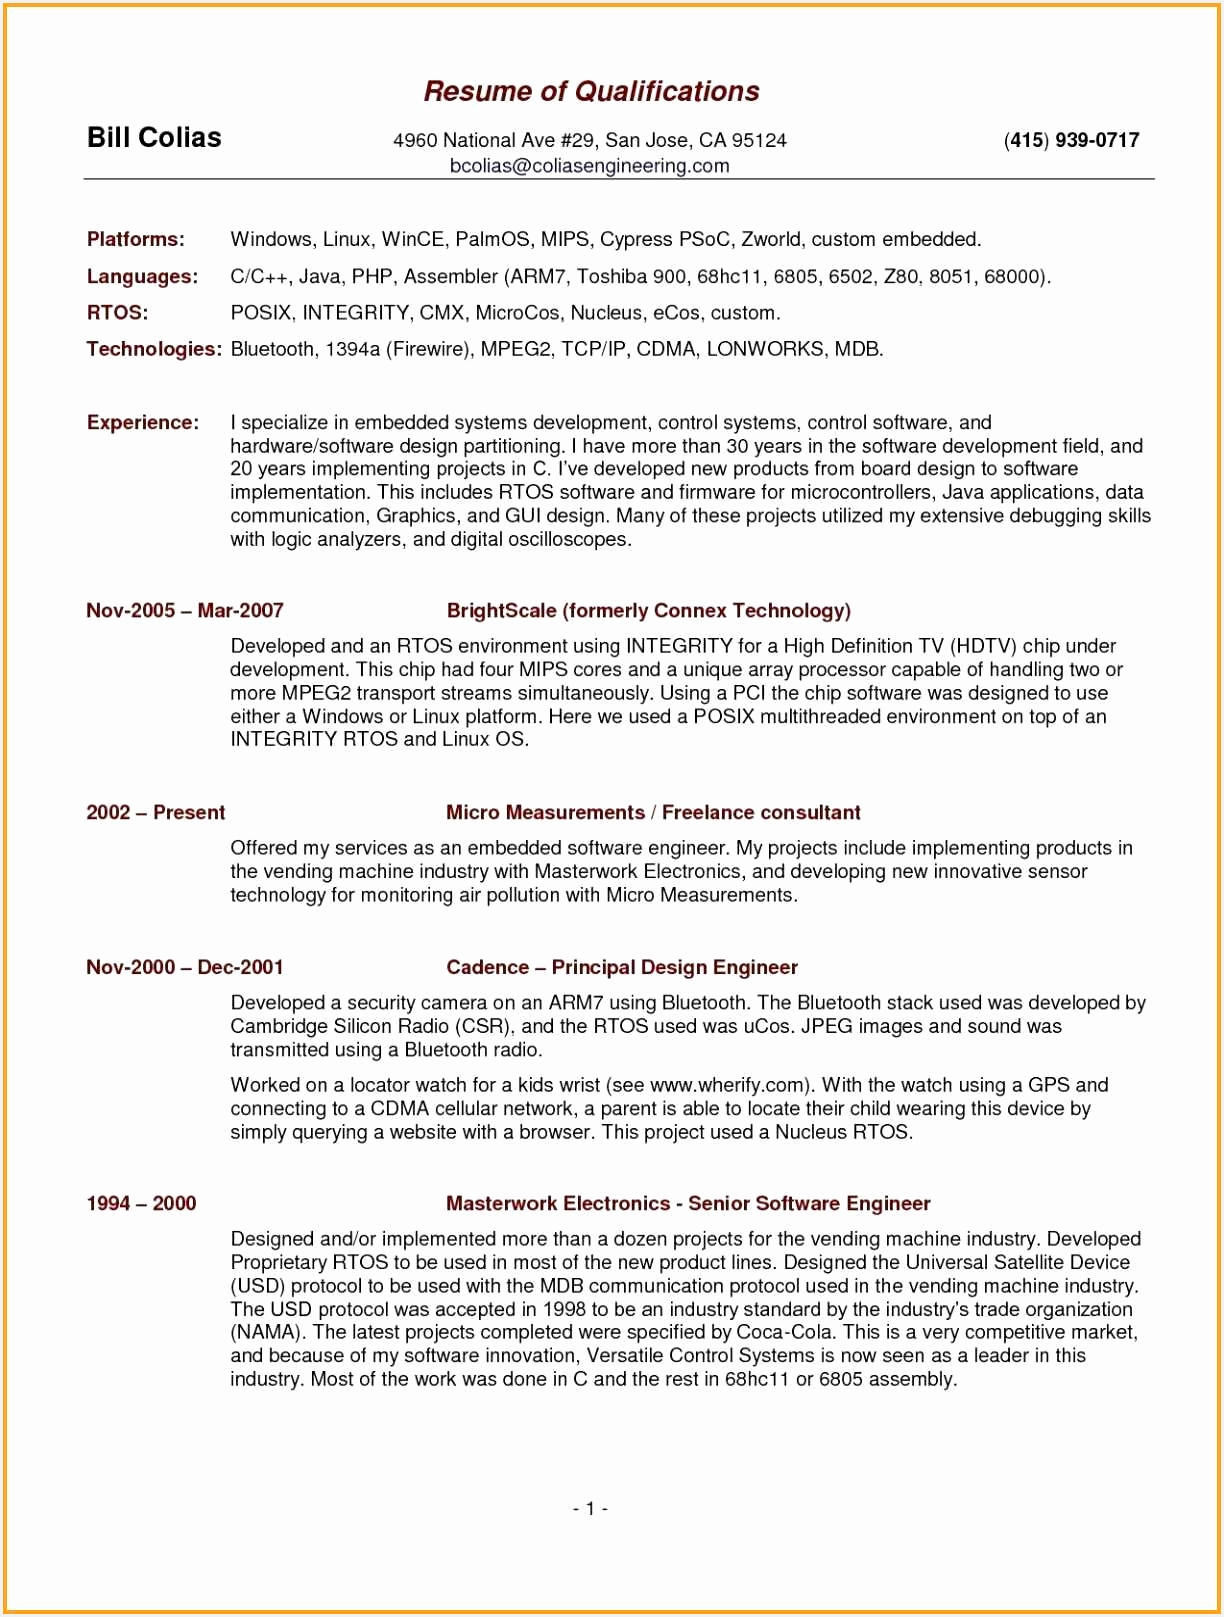 Free Executive Resume Template Inspiration Fresh Pr Resume Template Elegant Dictionary Template 0d Archives16171224